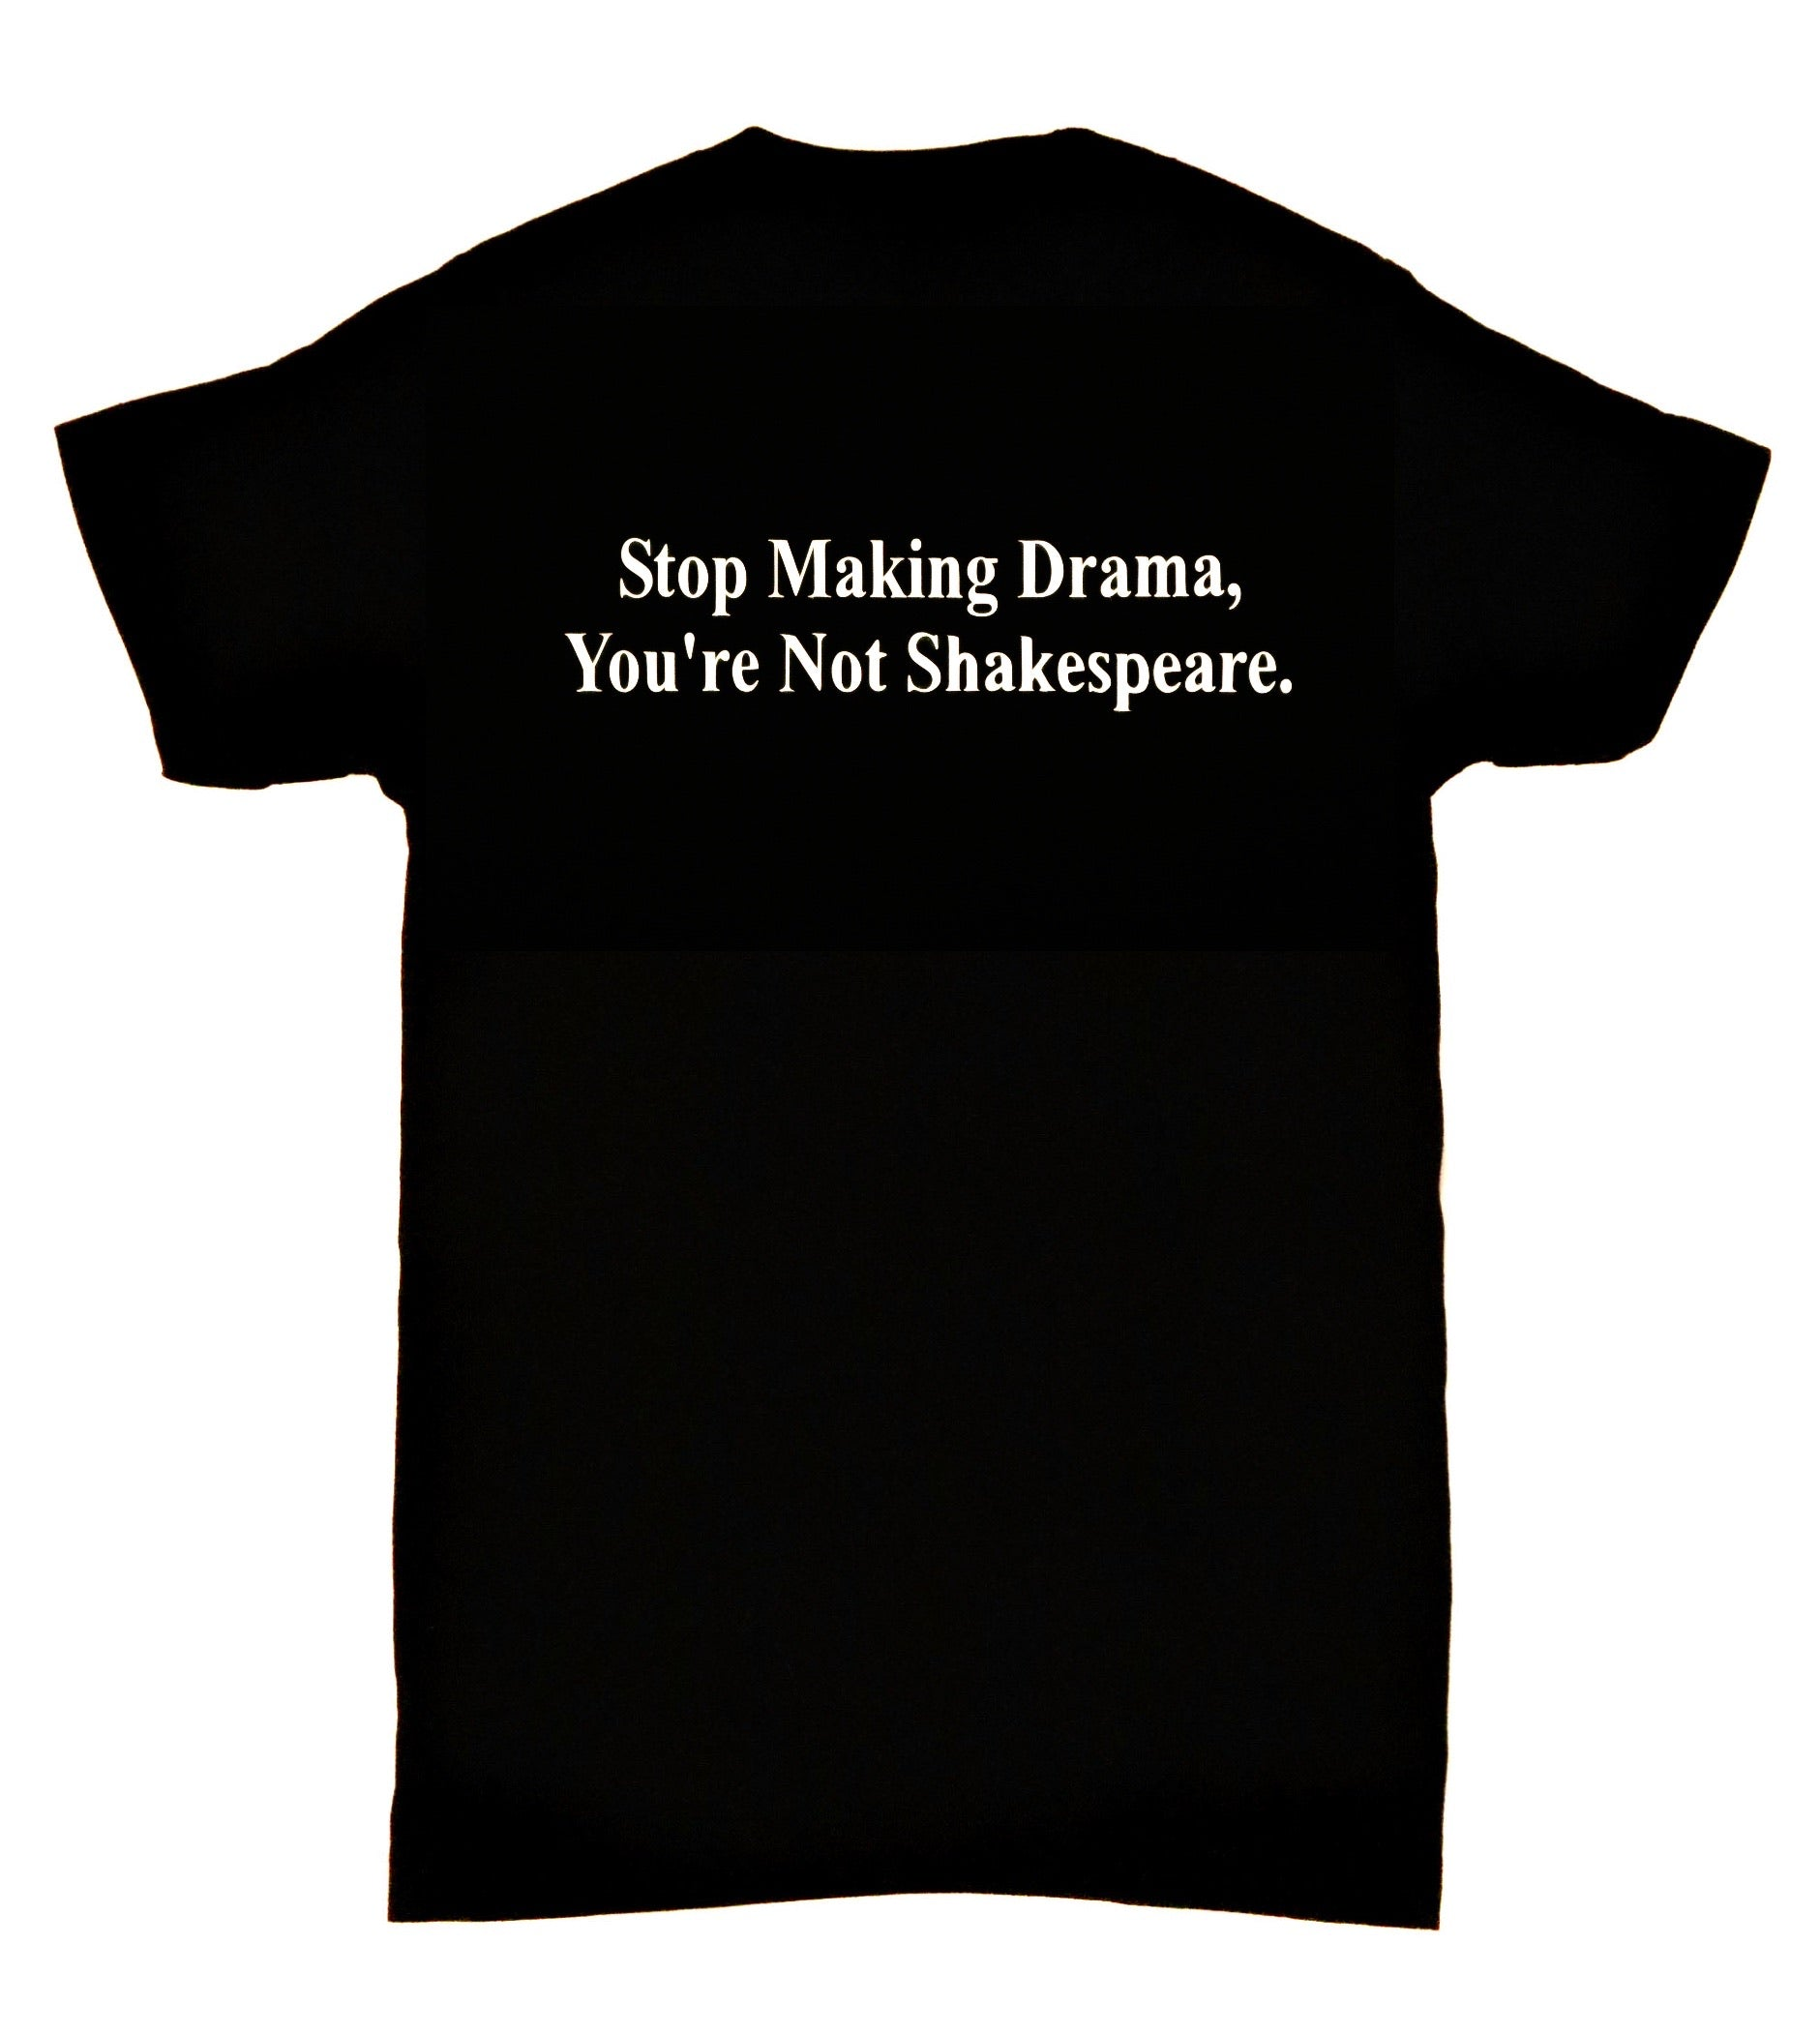 Stop Making Drama, You're Not Shakespeare. Stop Making Drama, You're Not Shakespeare.